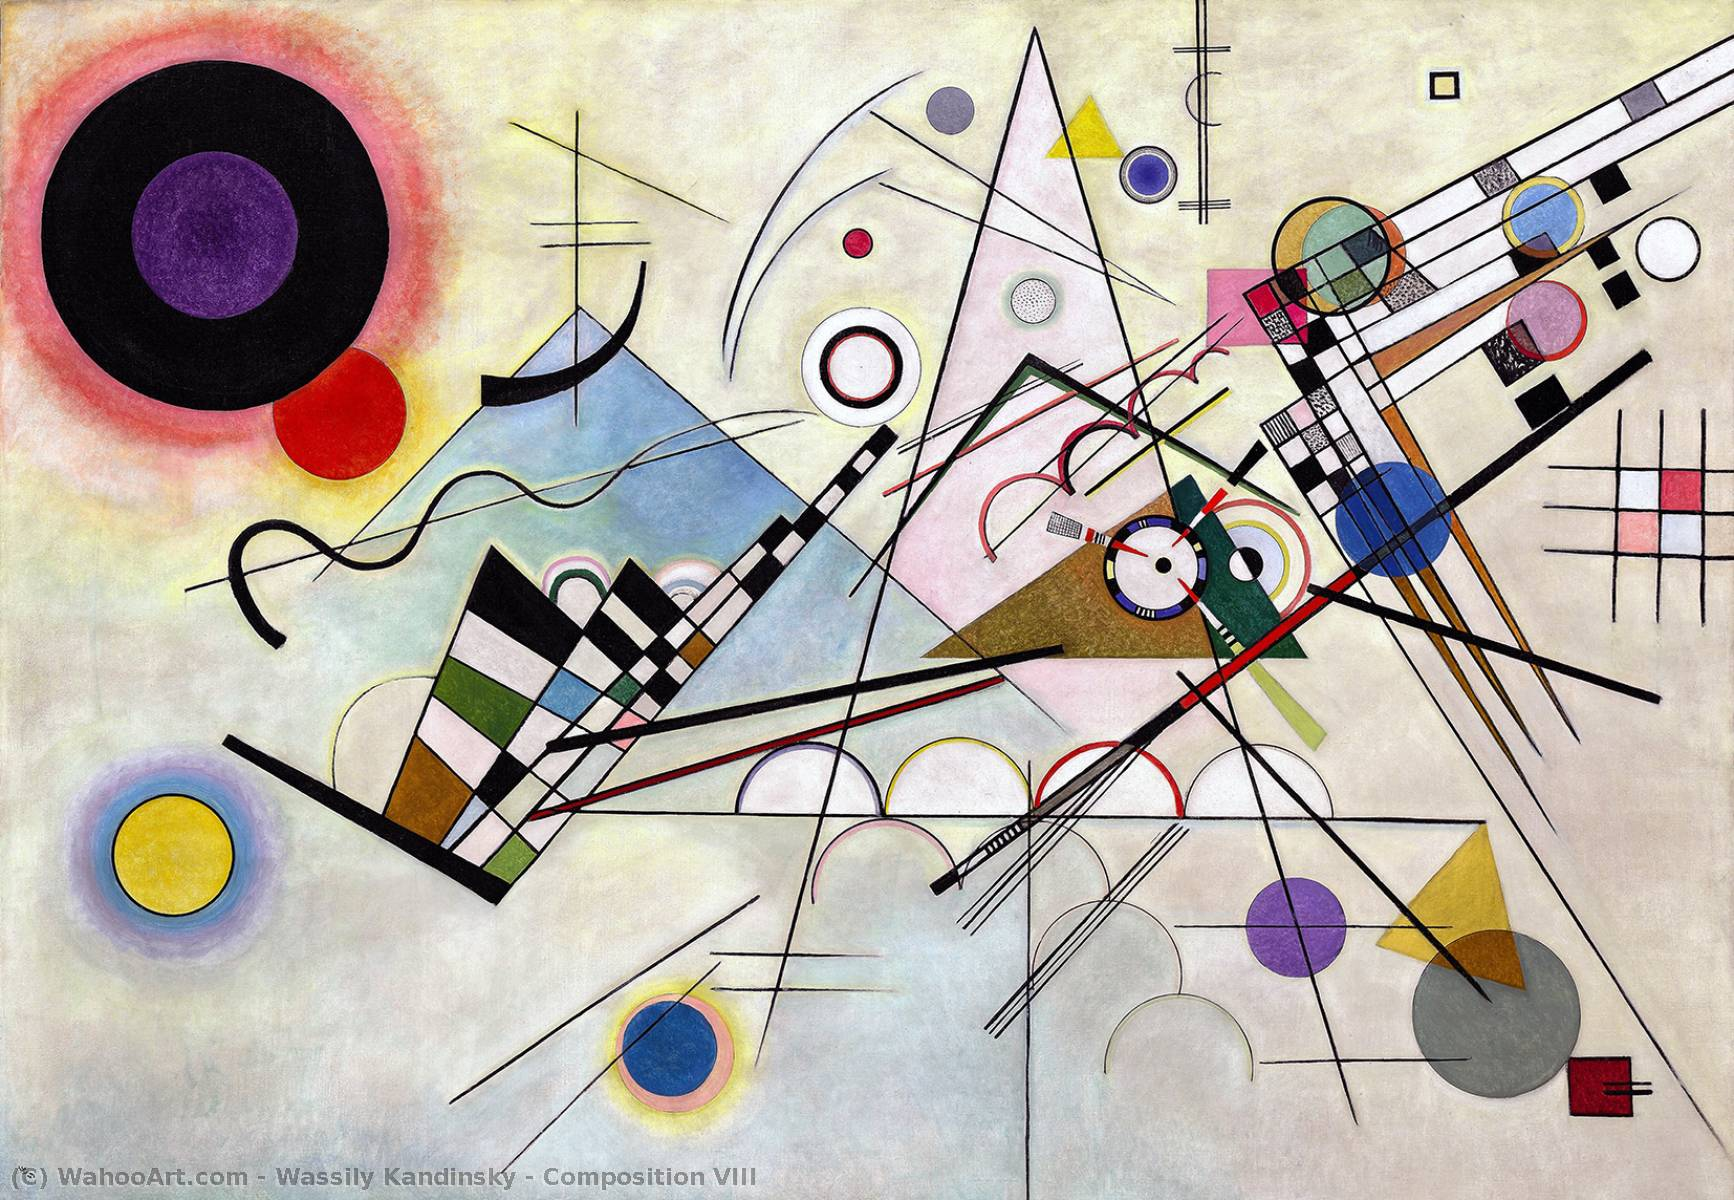 famous painting composition viii of Wassily Kandinsky